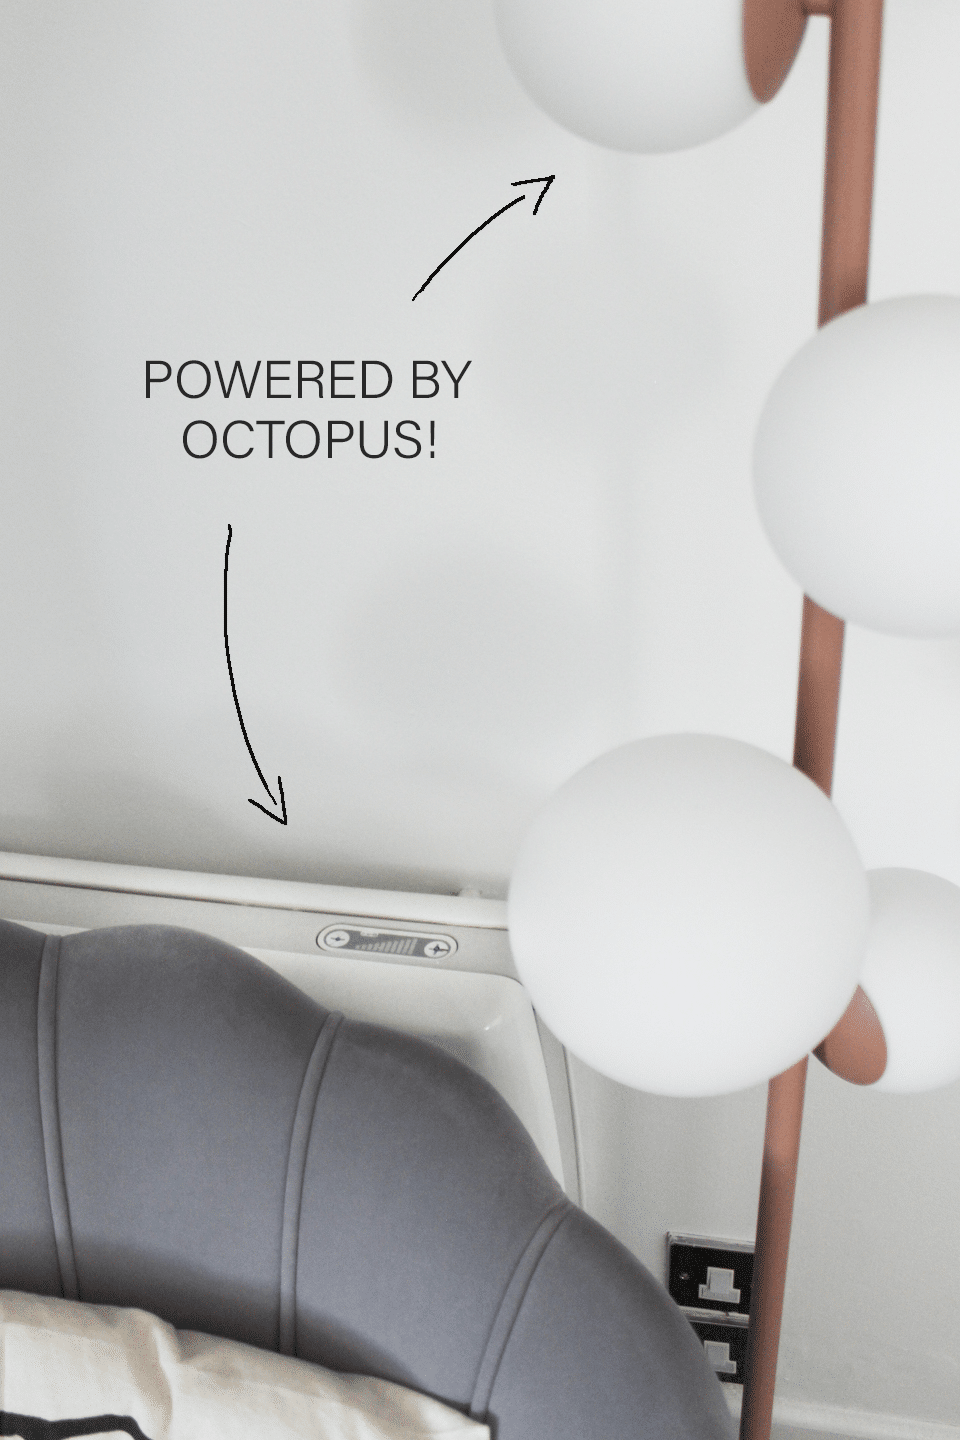 """Electric light and heater with annotated words """"Powered by Octopus!"""""""